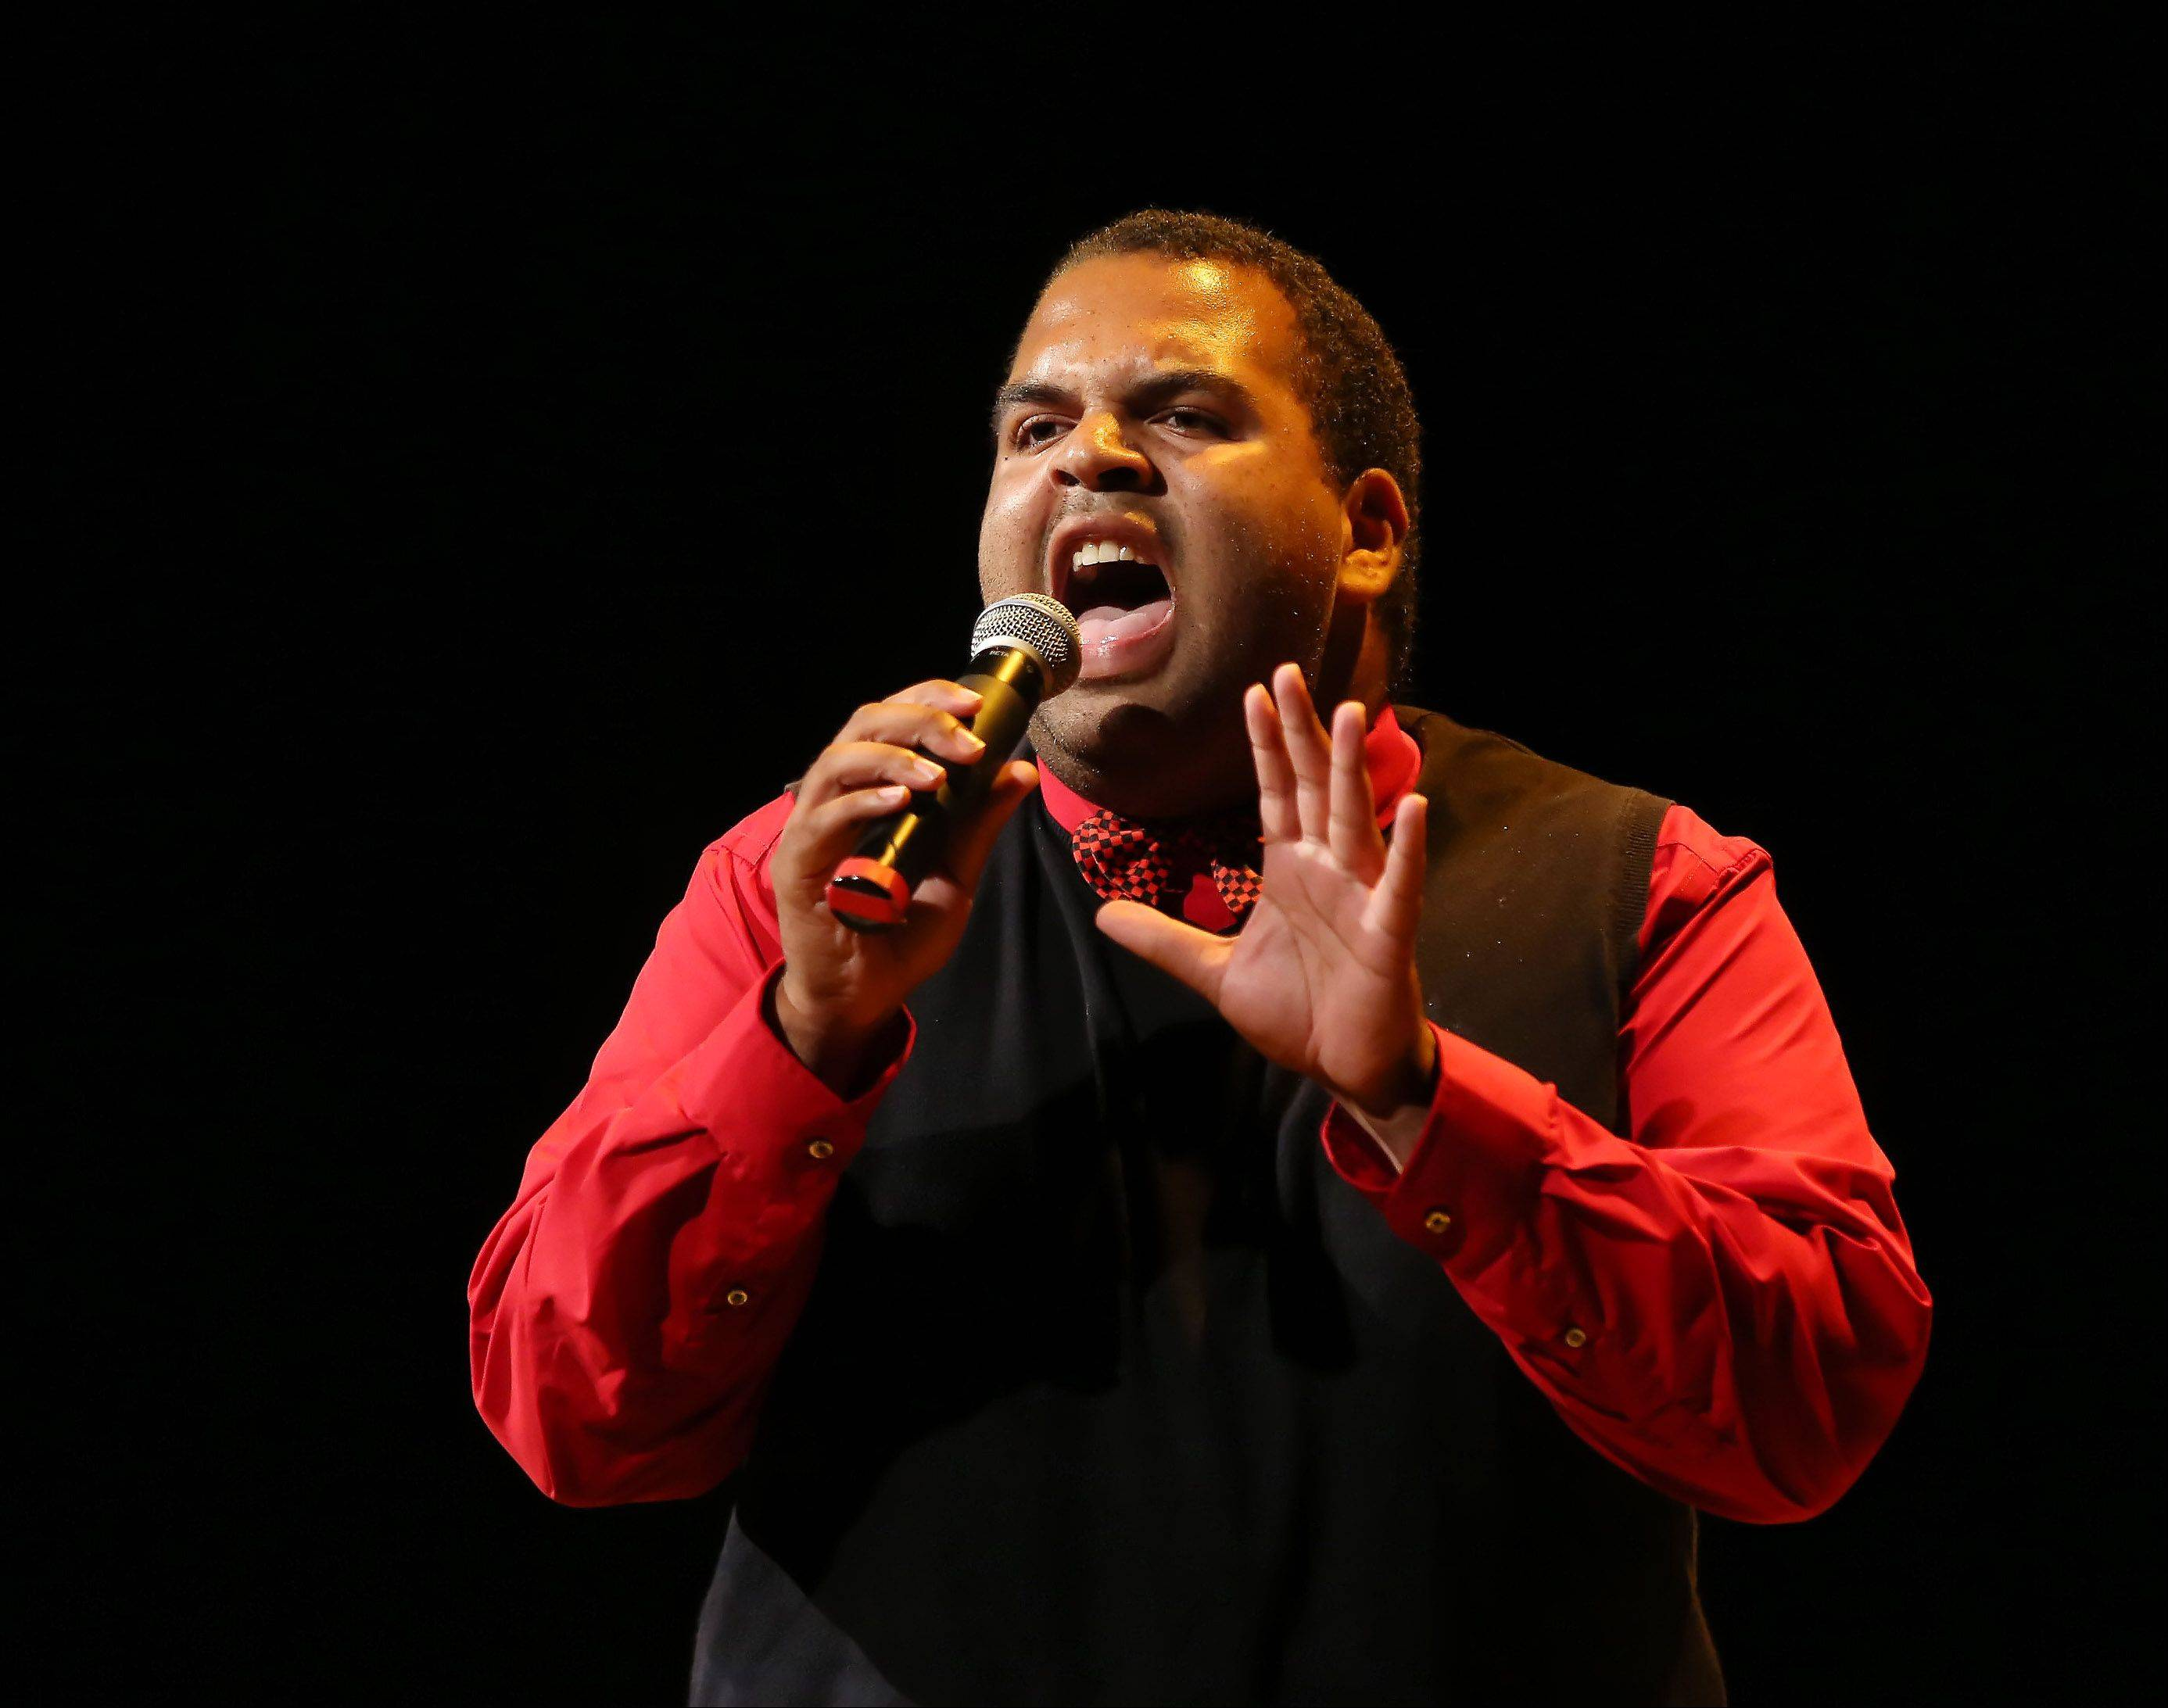 Andrew Johnston of Bourbonnais sings Sunday during the second round of performances by finalists of the Suburban Chicago's Got Talent competition at the Metropolis Performing Arts Centre in Arlington Heights. The summer long talent contest is presented by the Daily Herald and sponsored by the Arlington Heights Chamber of Commerce.